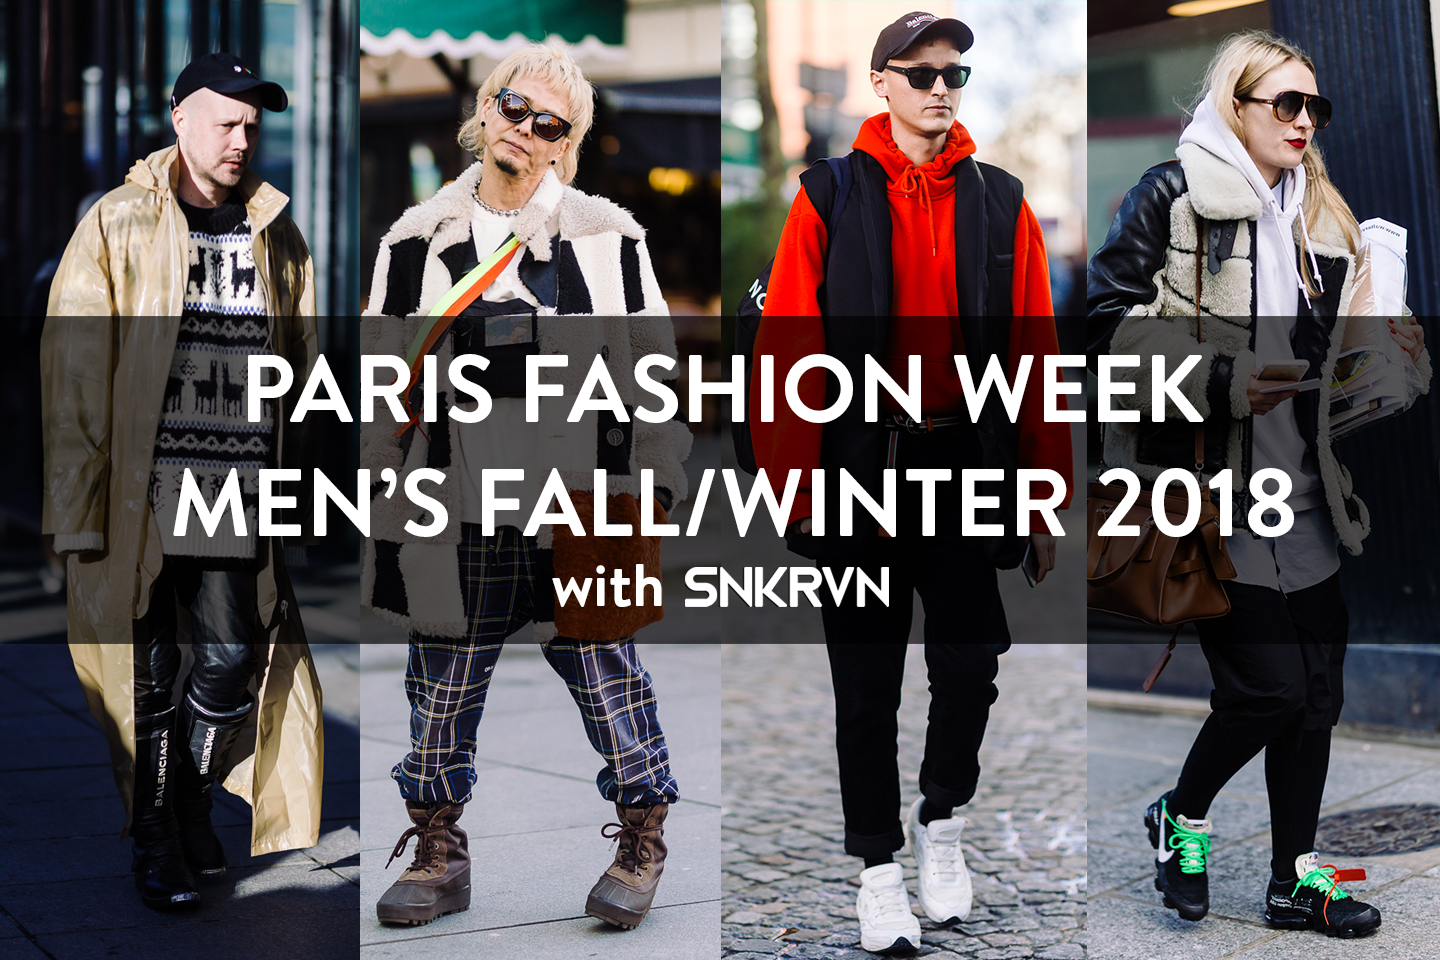 Paris Fashion Week Men's Fall / Winter 2018 - What do players in France wear on the first day?